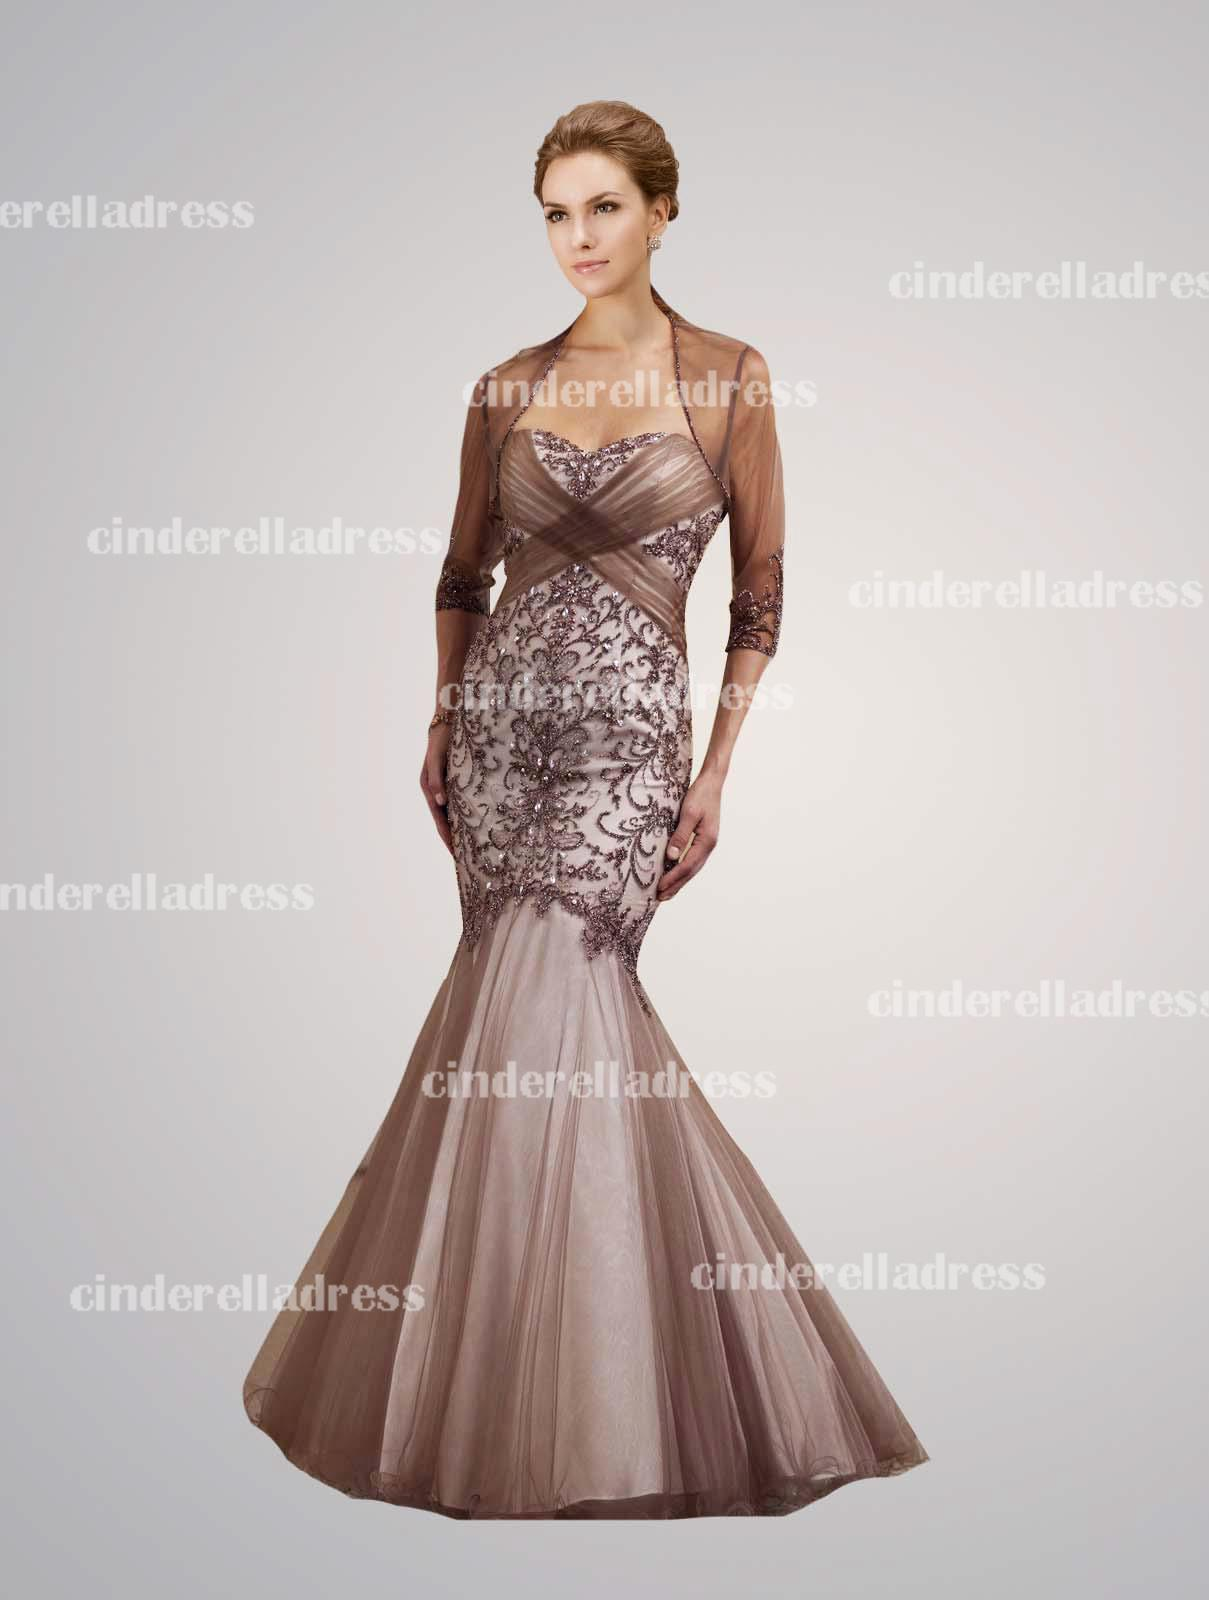 2014 New Mother of the Bride Dresses Sweetheart Bolero Half Sleeves Tulle Crystals Floor-length Vintage Evening Dresses 111D06